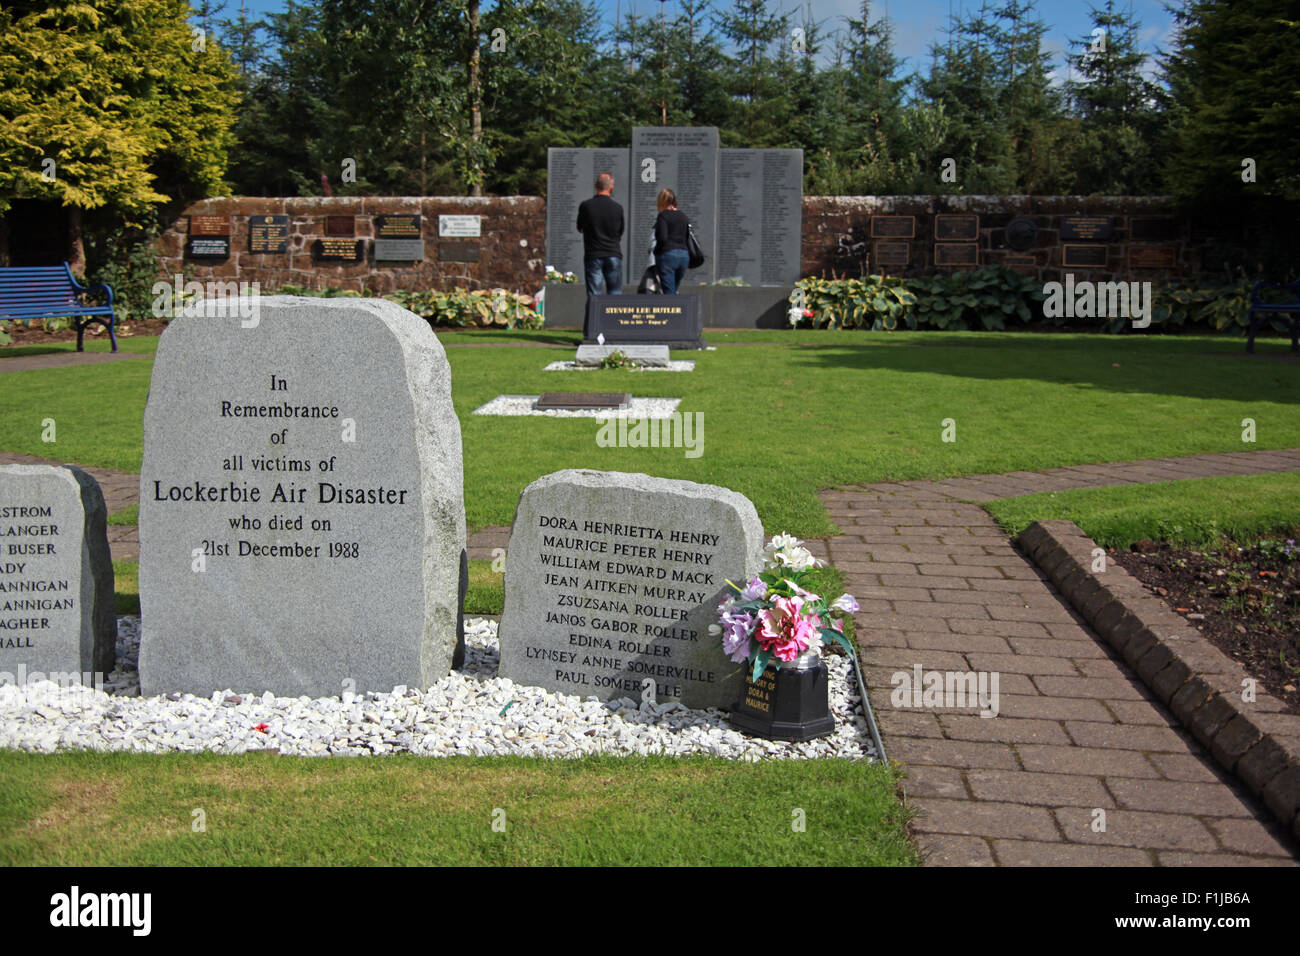 Lockerbie PanAm103 In Rememberance Memorial Visitors Remembering, Scotland - Stock Image